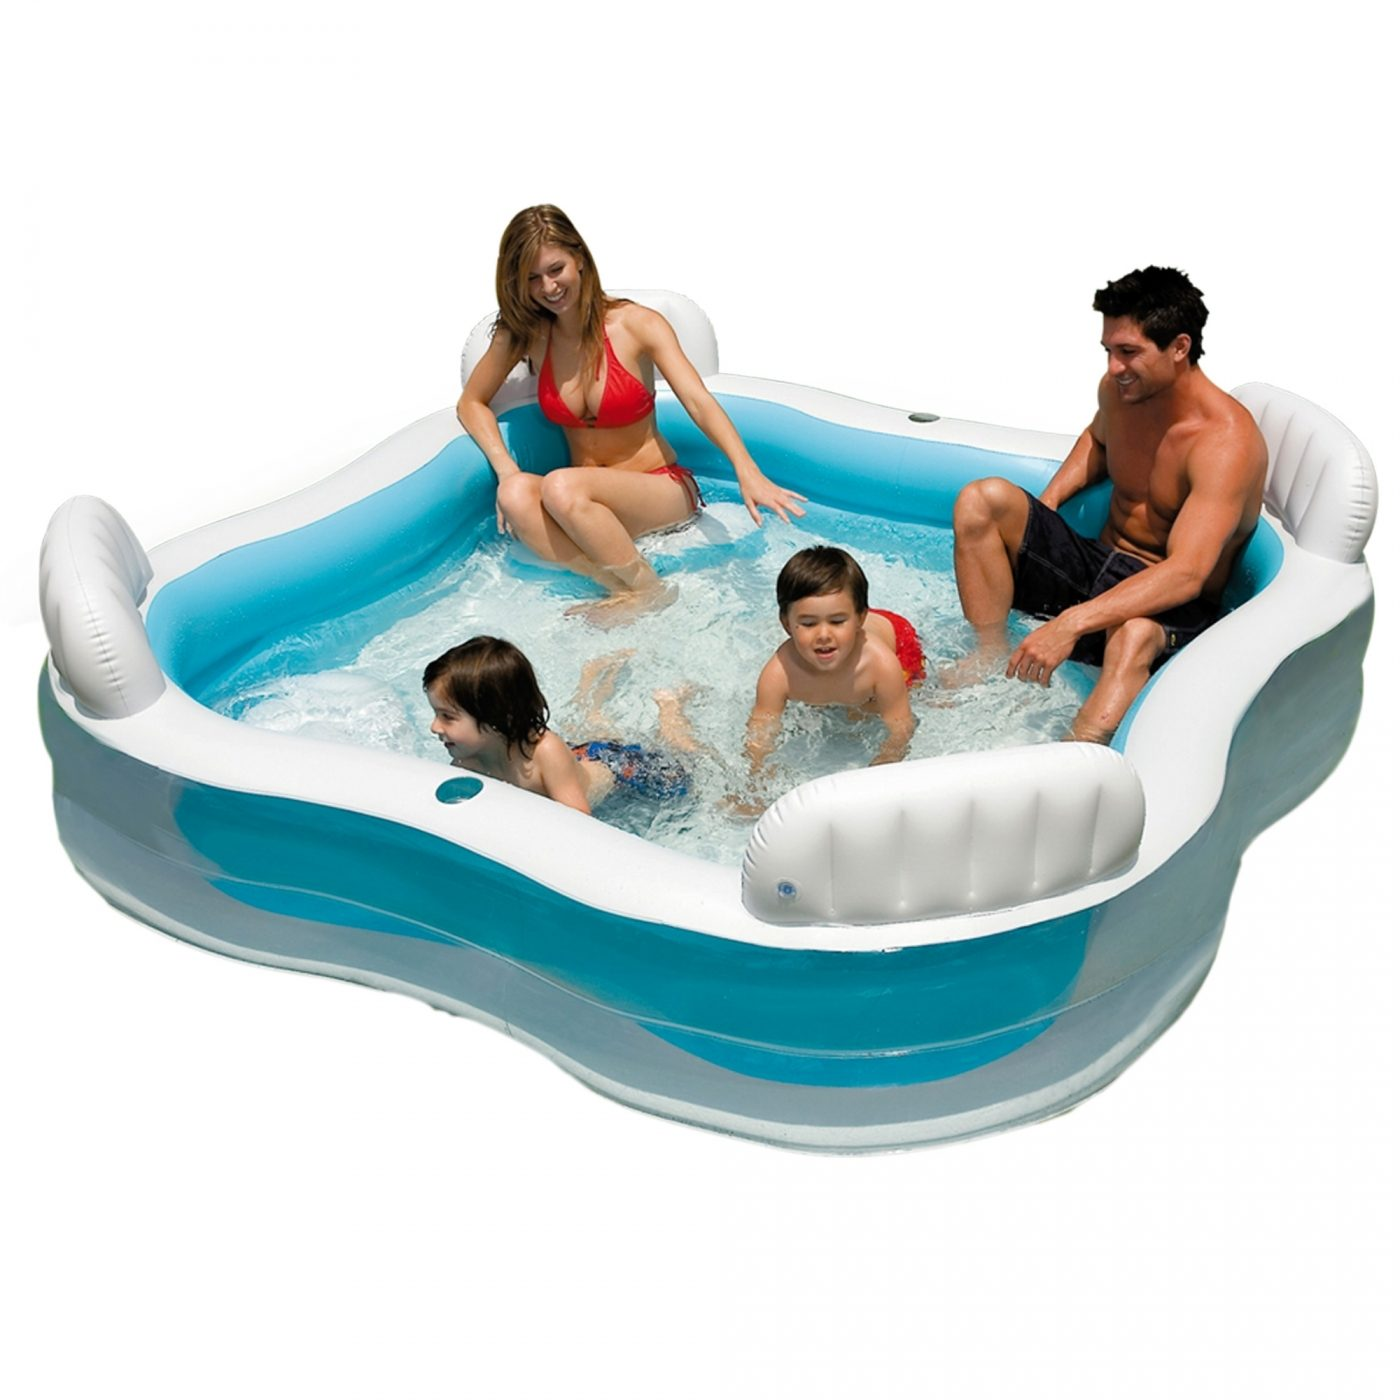 Piscina con asientos y respaldos intex por 36 95 en for Piscina intex cuadrada